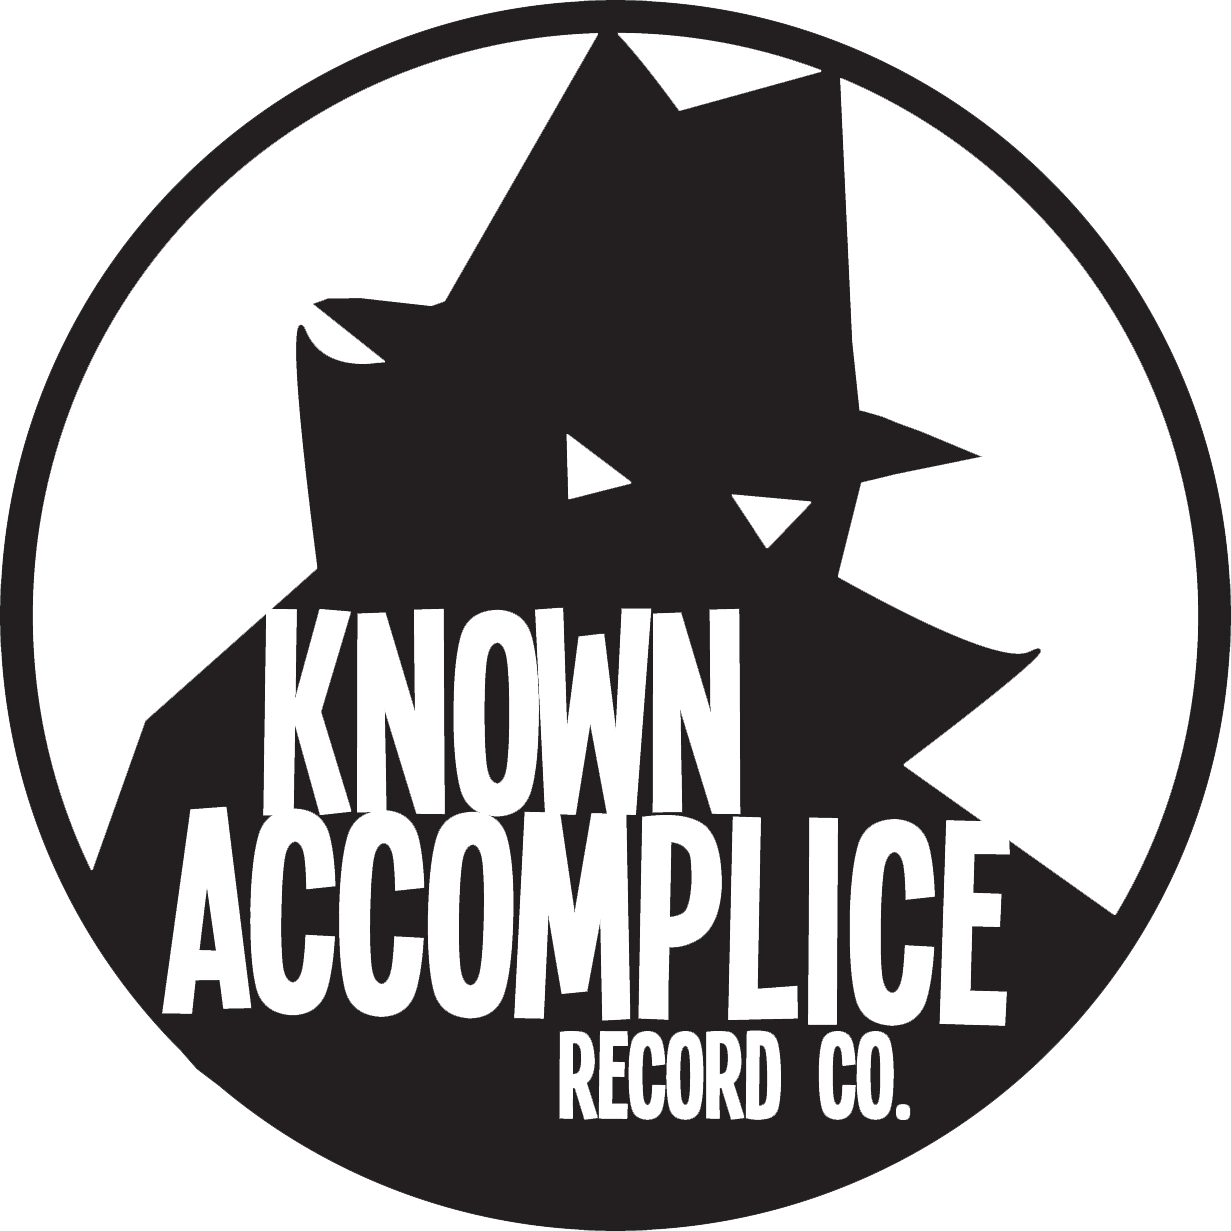 KnownAccompliceRCPrintnobleed.png